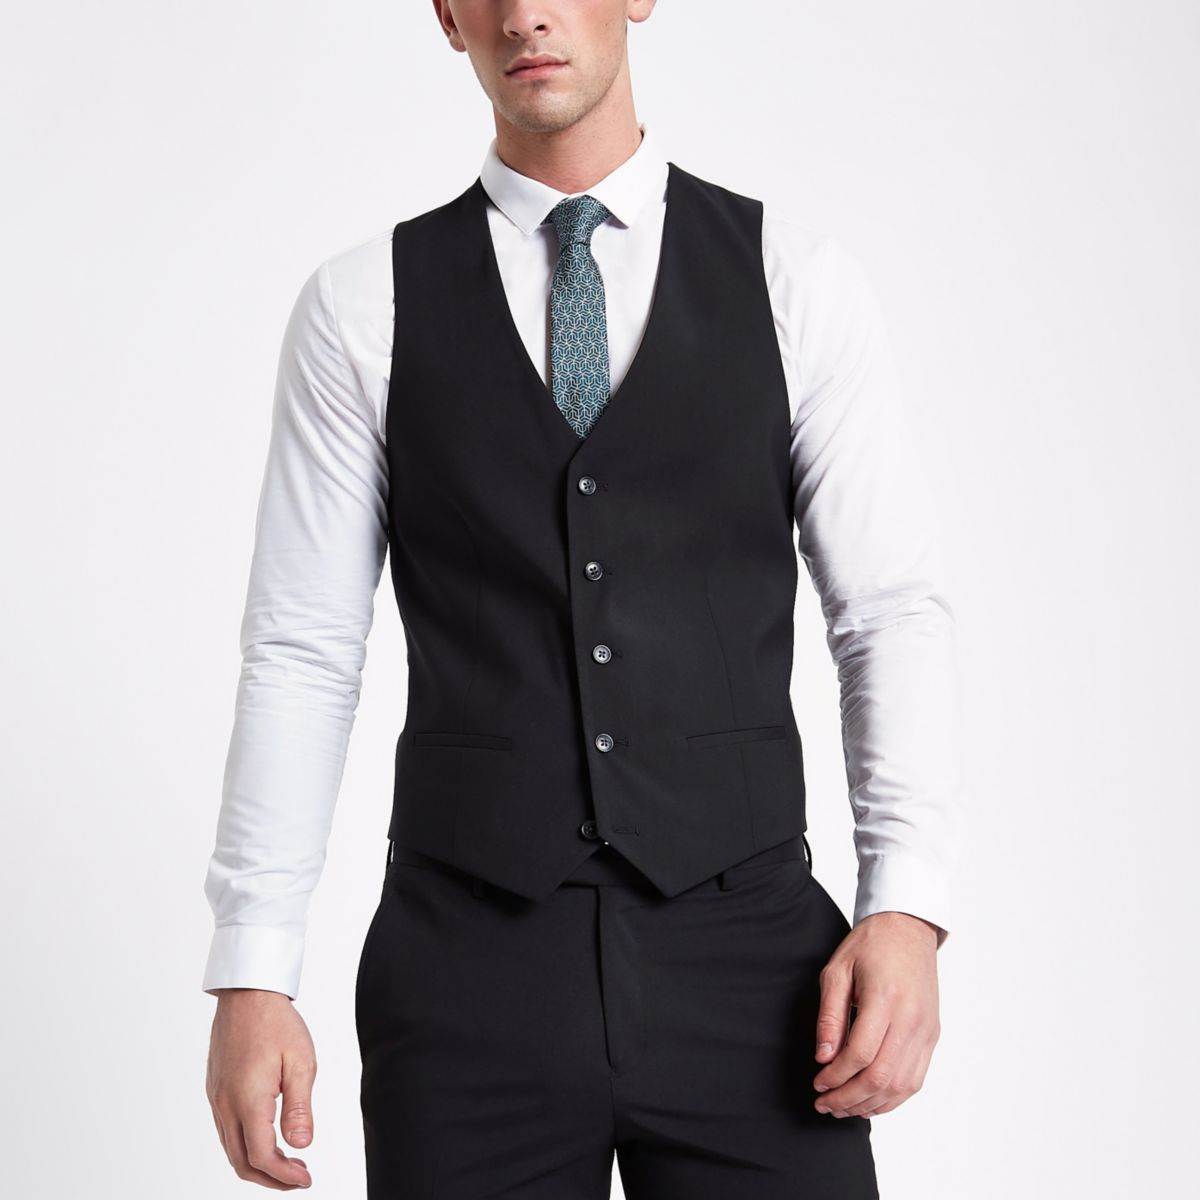 Mens Waistcoats for Every Occasion. We like to think we have a waistcoat for almost any occasion. from a suit waistcoat, to something a bit different and more flamboyant.